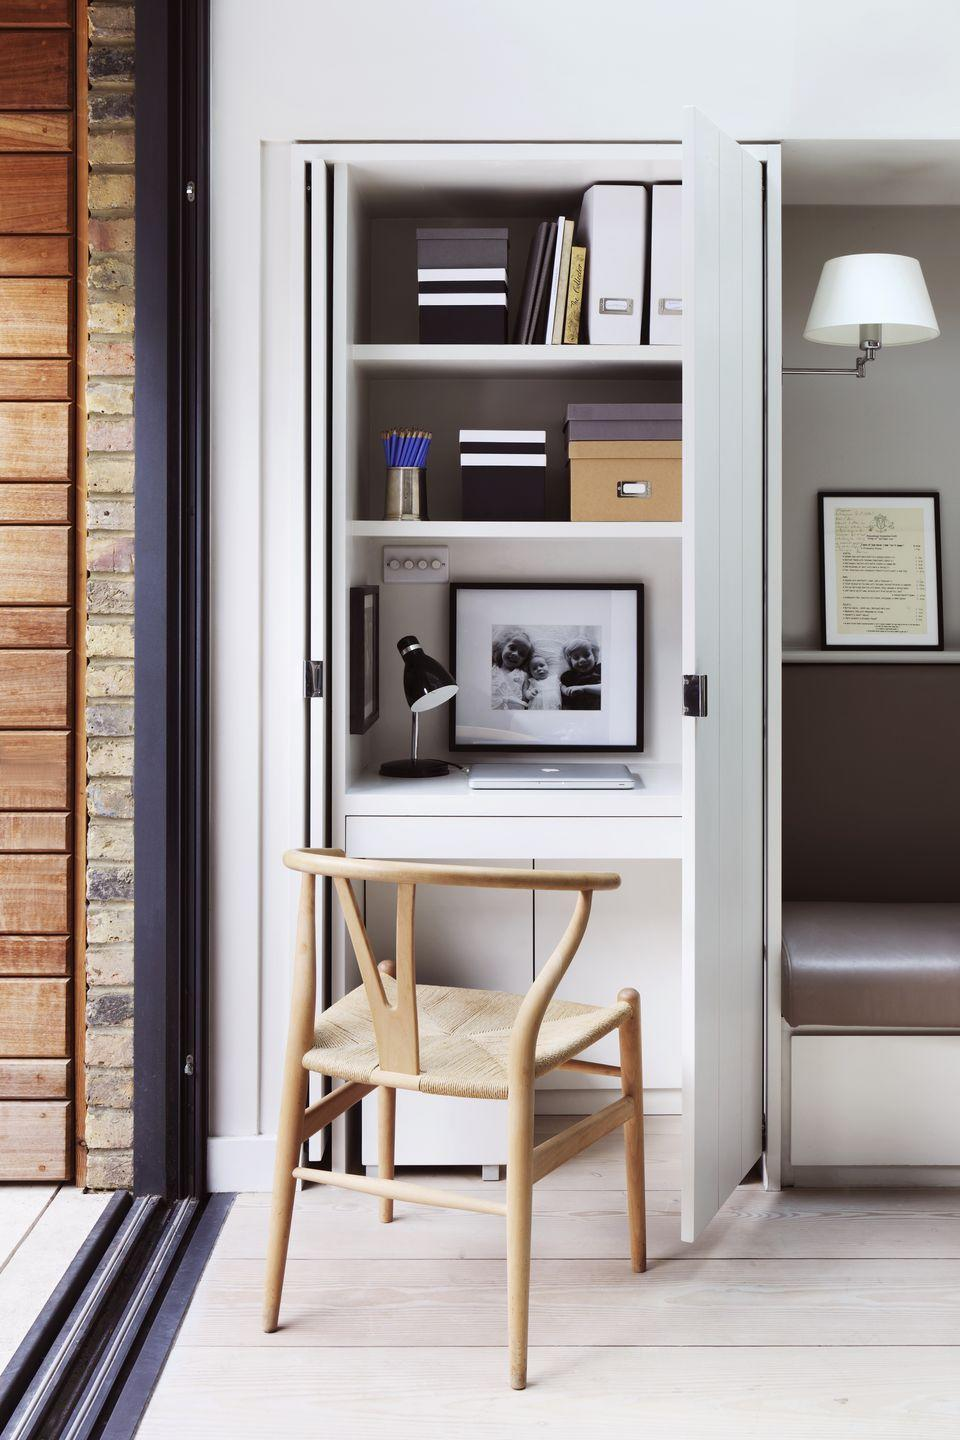 <p>Short on spare rooms to covert into an office? Condense your clothing into a capsule wardrobe to free up space so that you can transform a built-in cupboard into a small but perfectly formed workspace. Paint the interior white to keep it light, or commission an electrician to put in a spotlight to save using precious desk space for a lamp.</p>